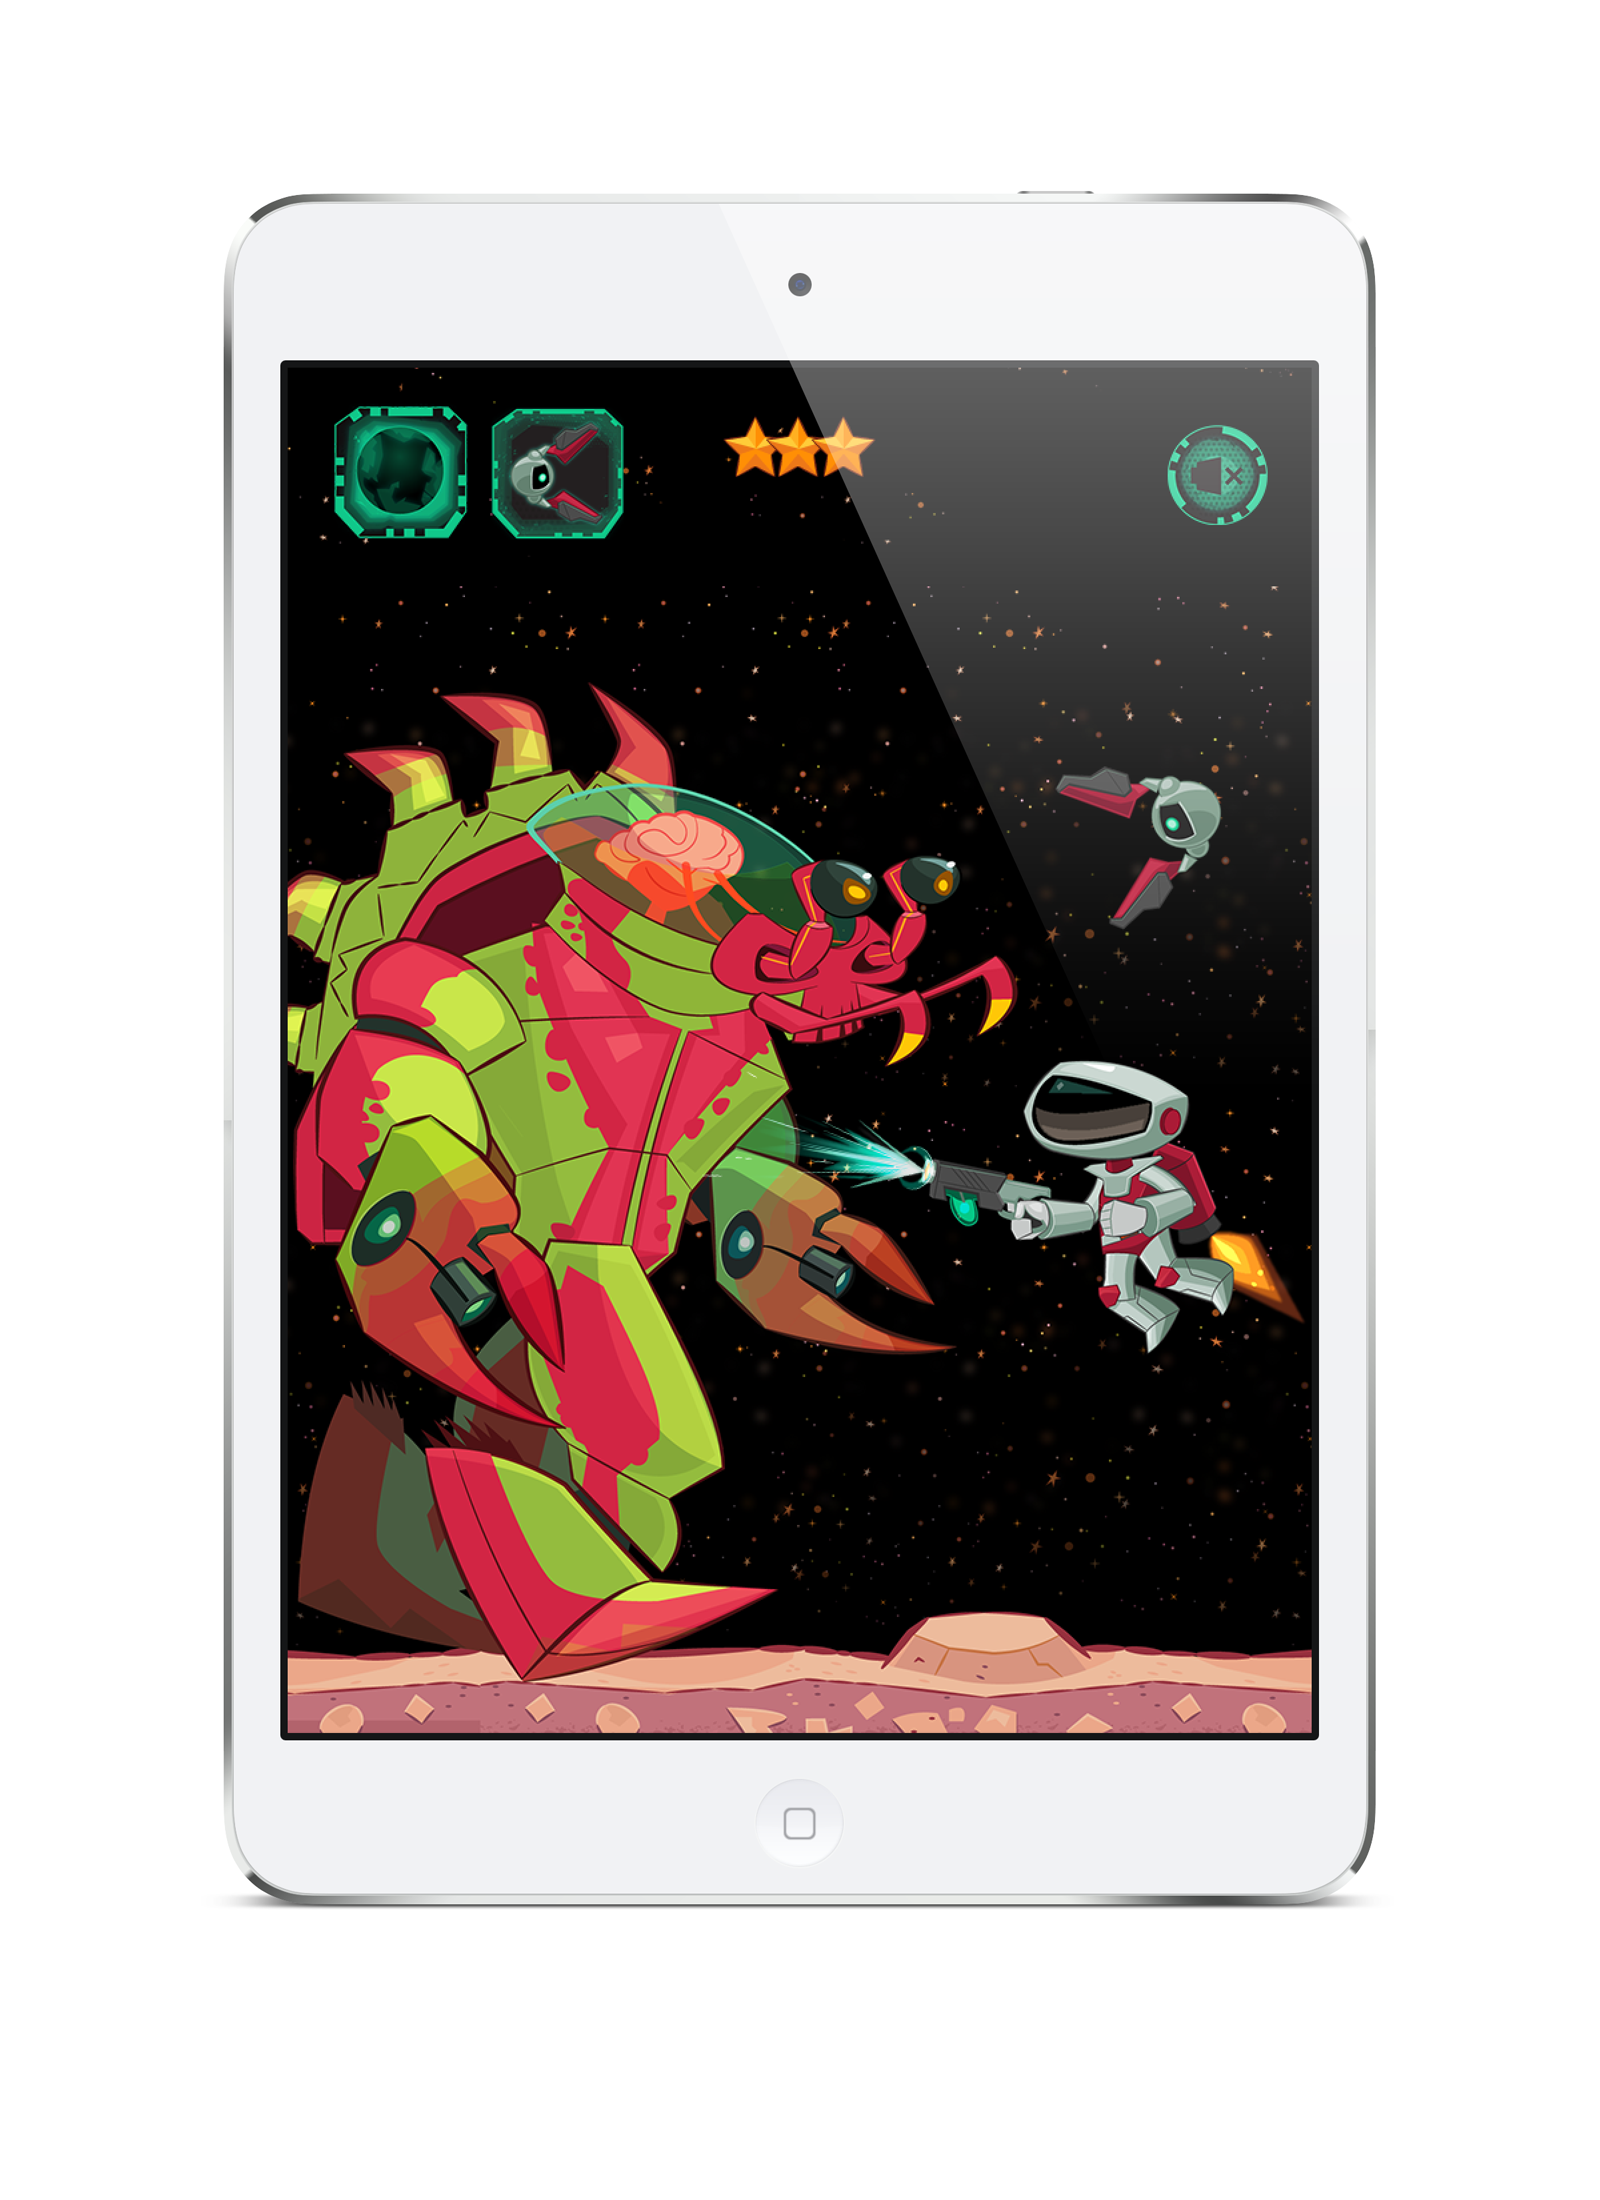 SPACE RANGERS: JET PACK Tablet Game Screen